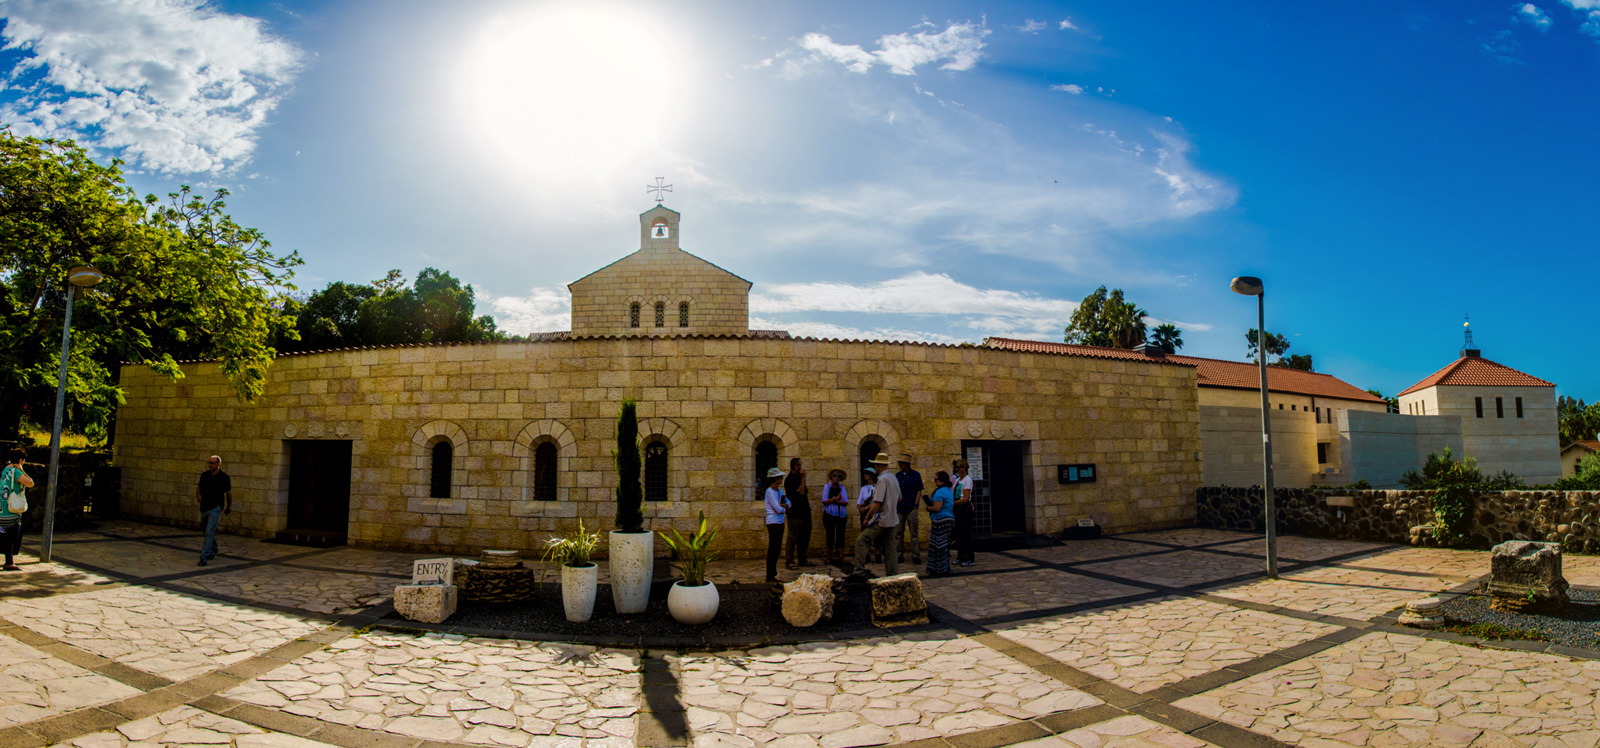 The rebuilt Church of the Multiplication of Loaves and Fishes at Tabgha (Seven Springs). It is like stepping into an authentic fourth century Byzantine church.